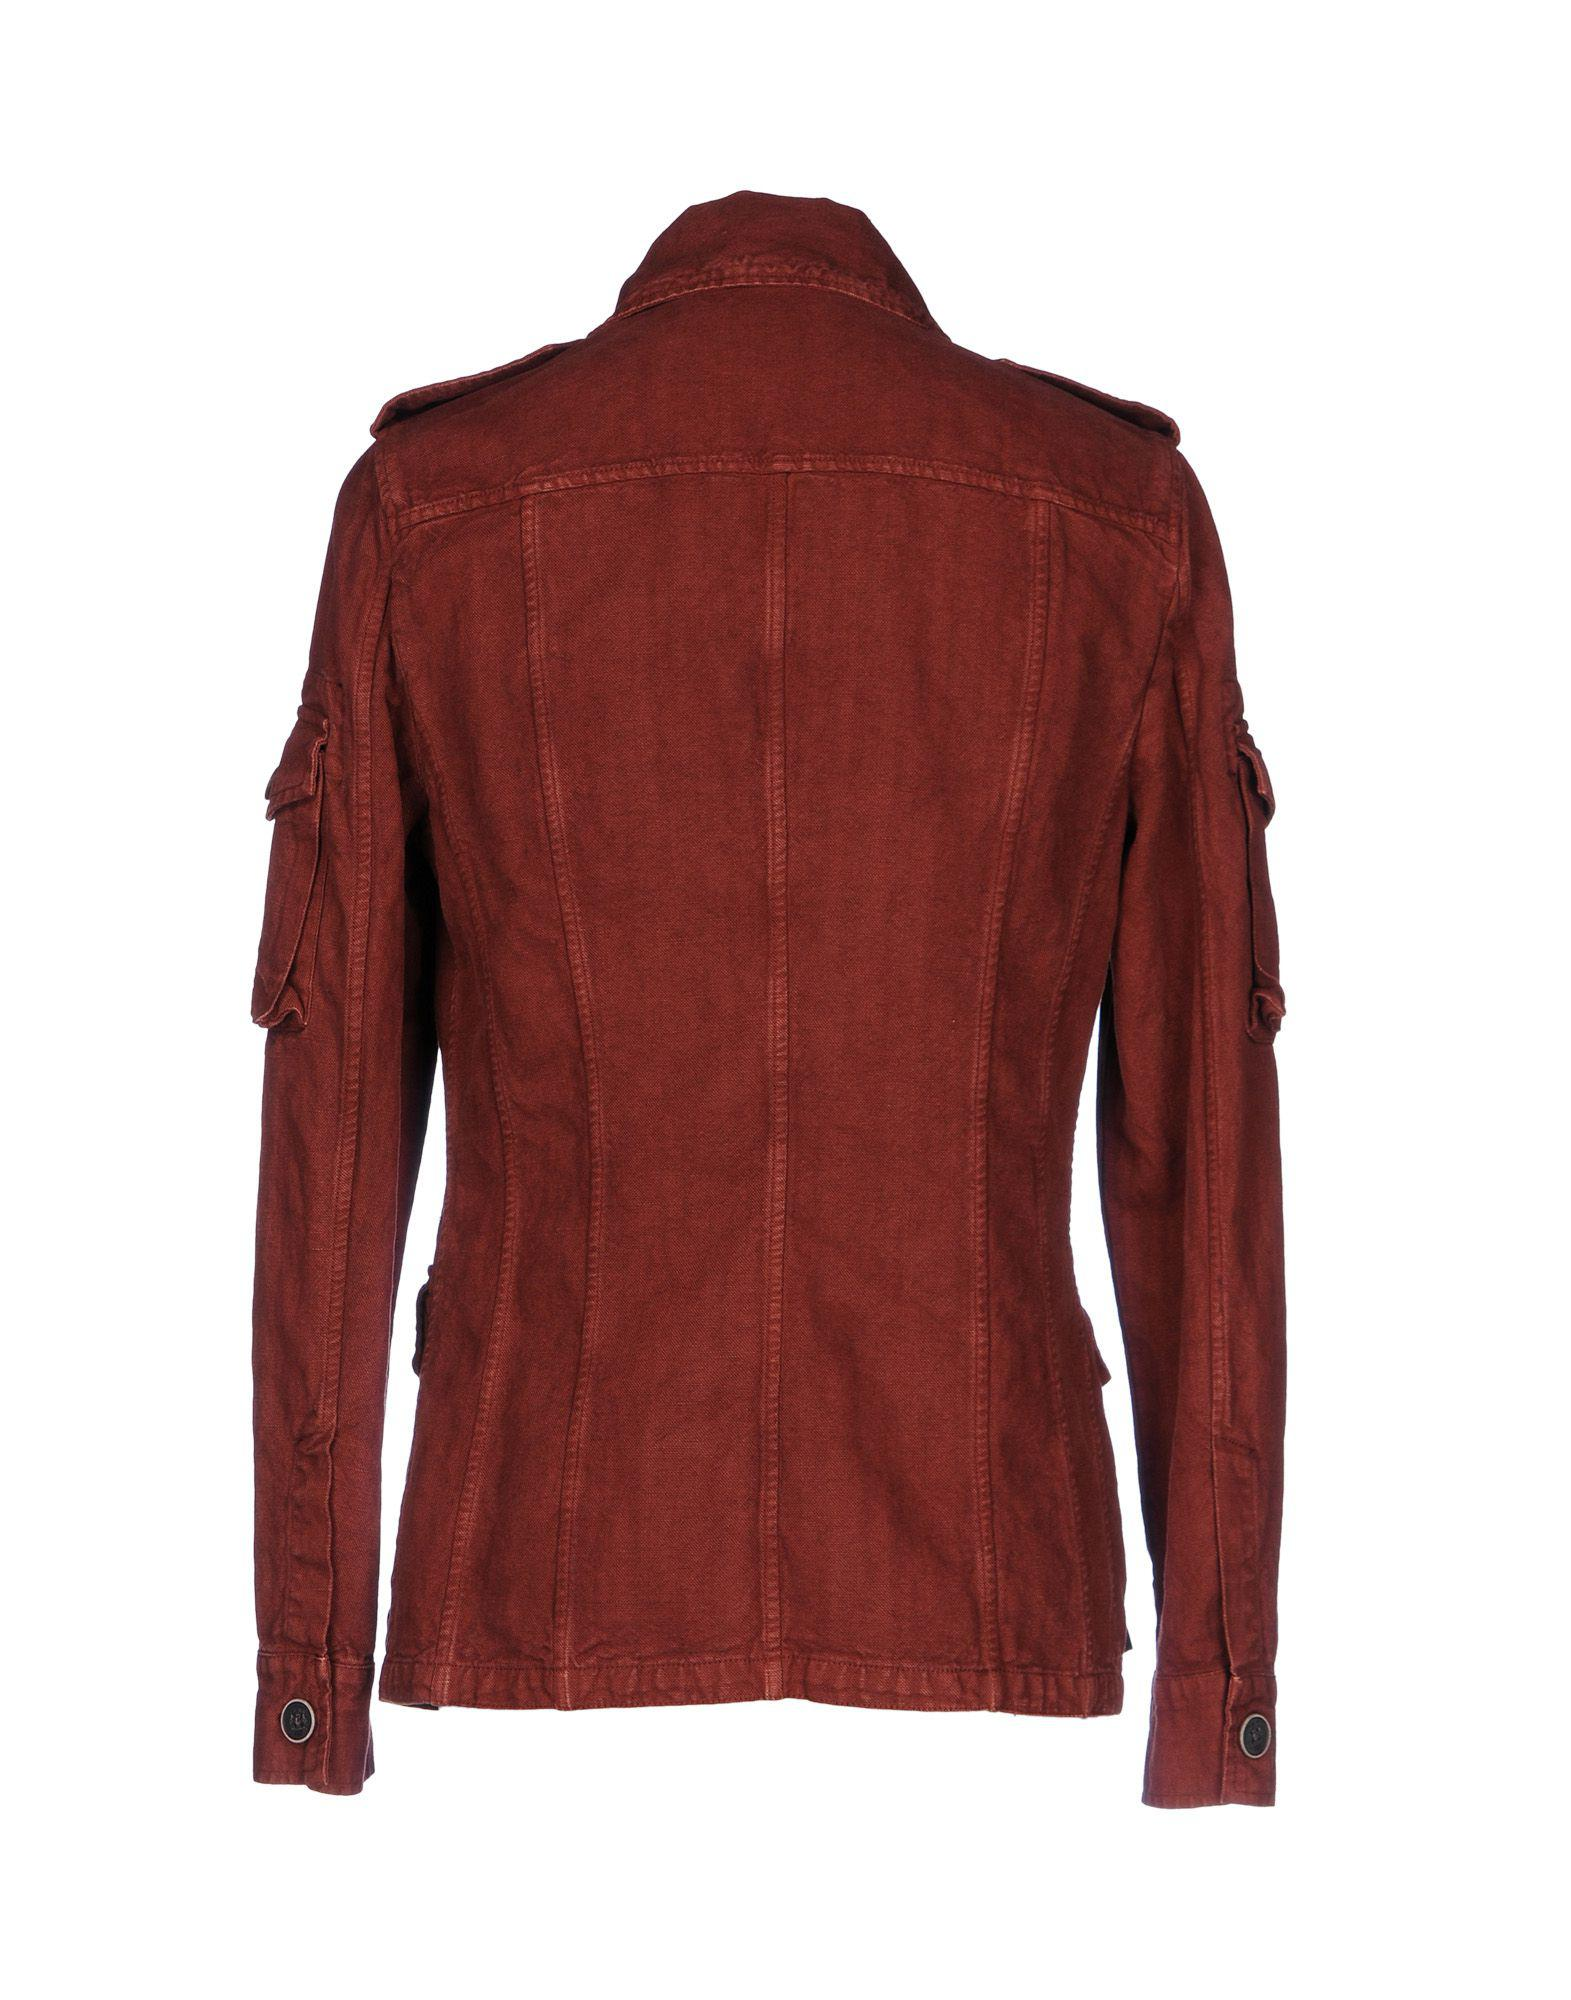 Trussardi Canvas Jacket in Rust (Red) for Men